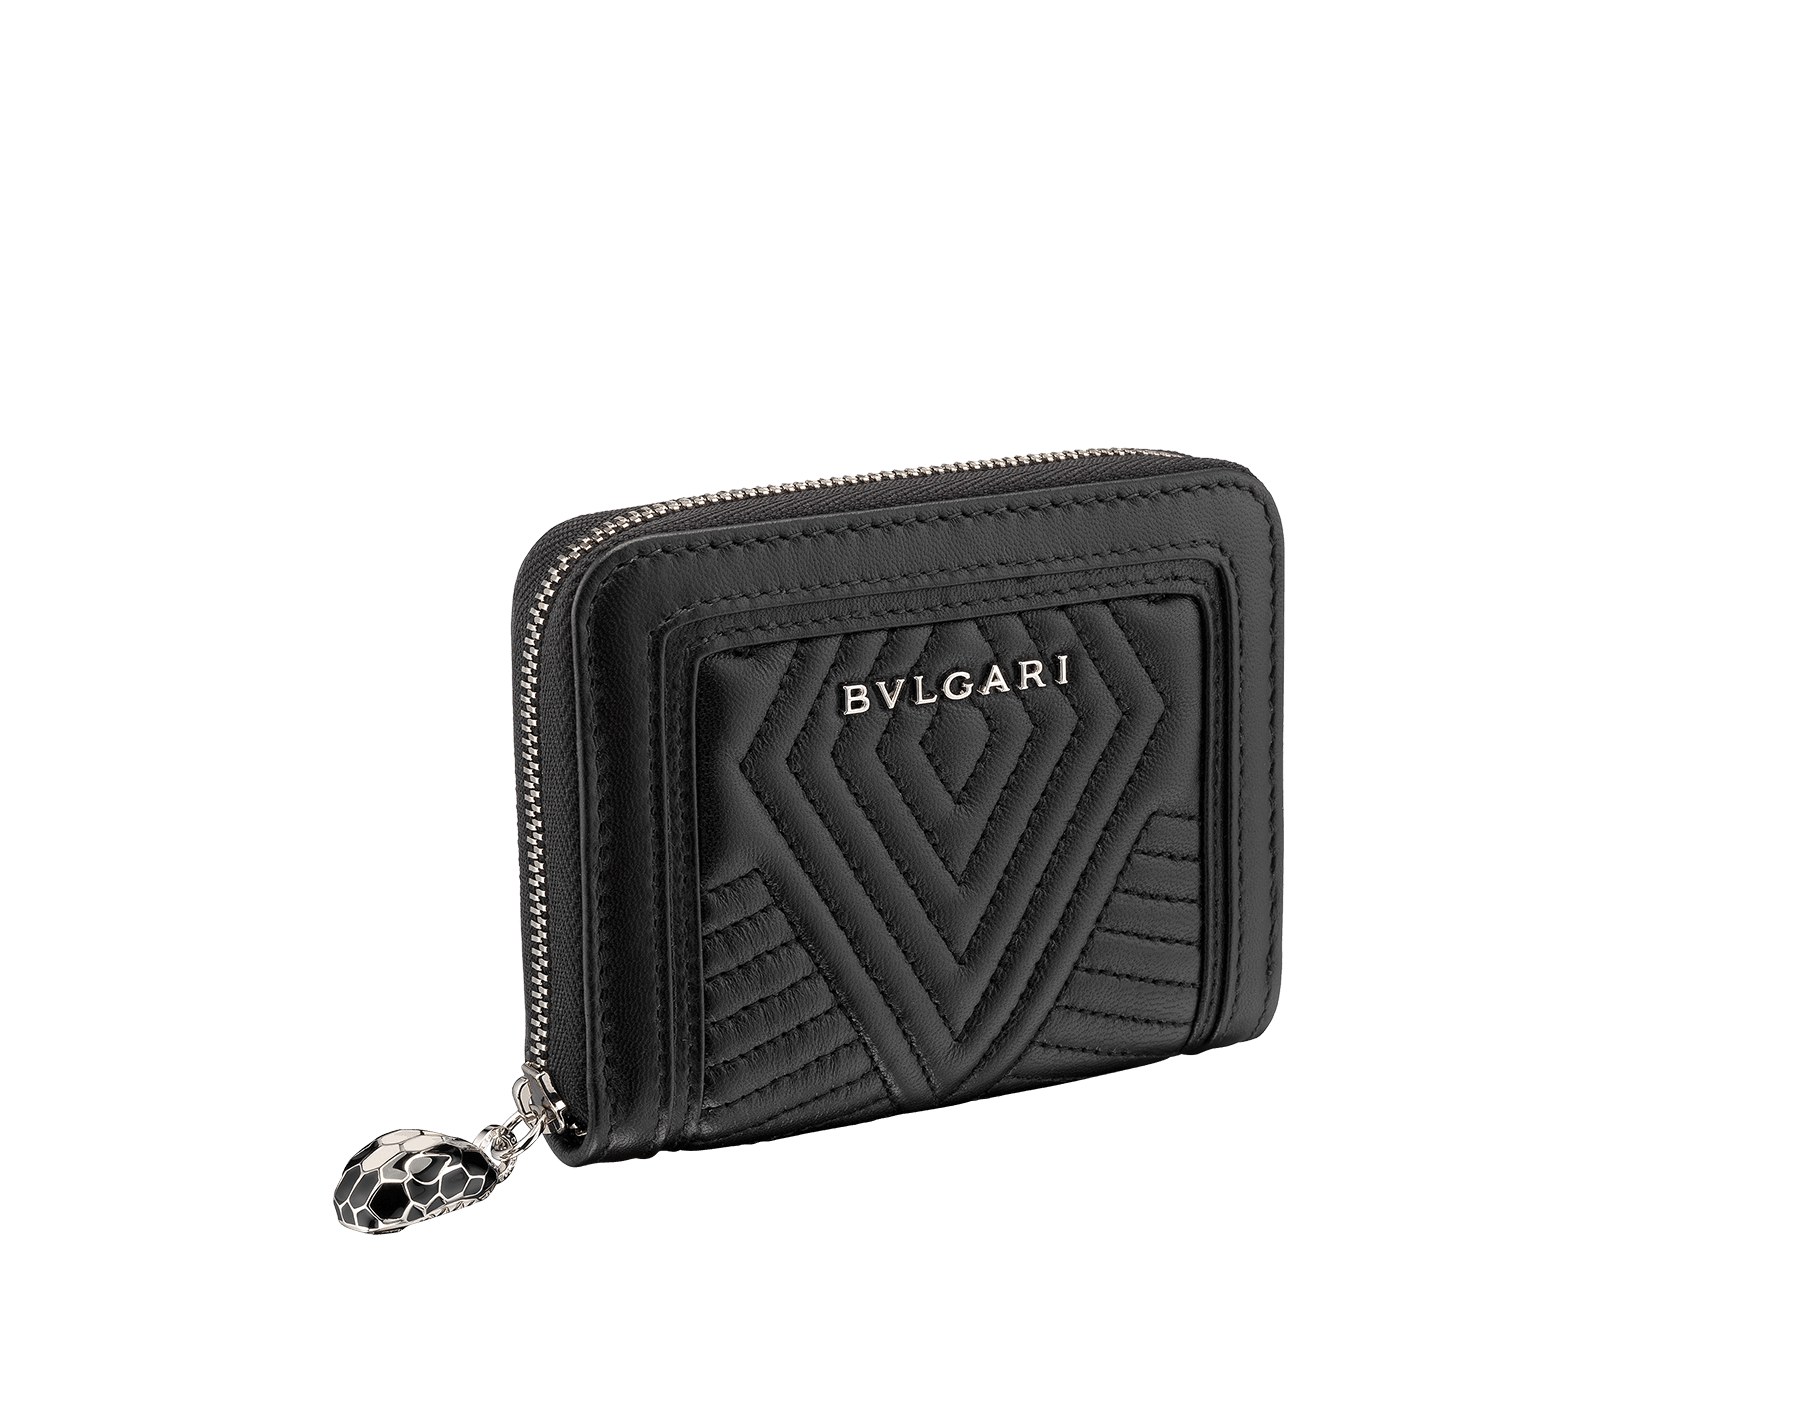 Serpenti Diamond Blast mini zipped wallet in black quilted nappa leather. Iconic snakehead zip puller in black and white enamel, with black enamel eyes. 287584 image 1